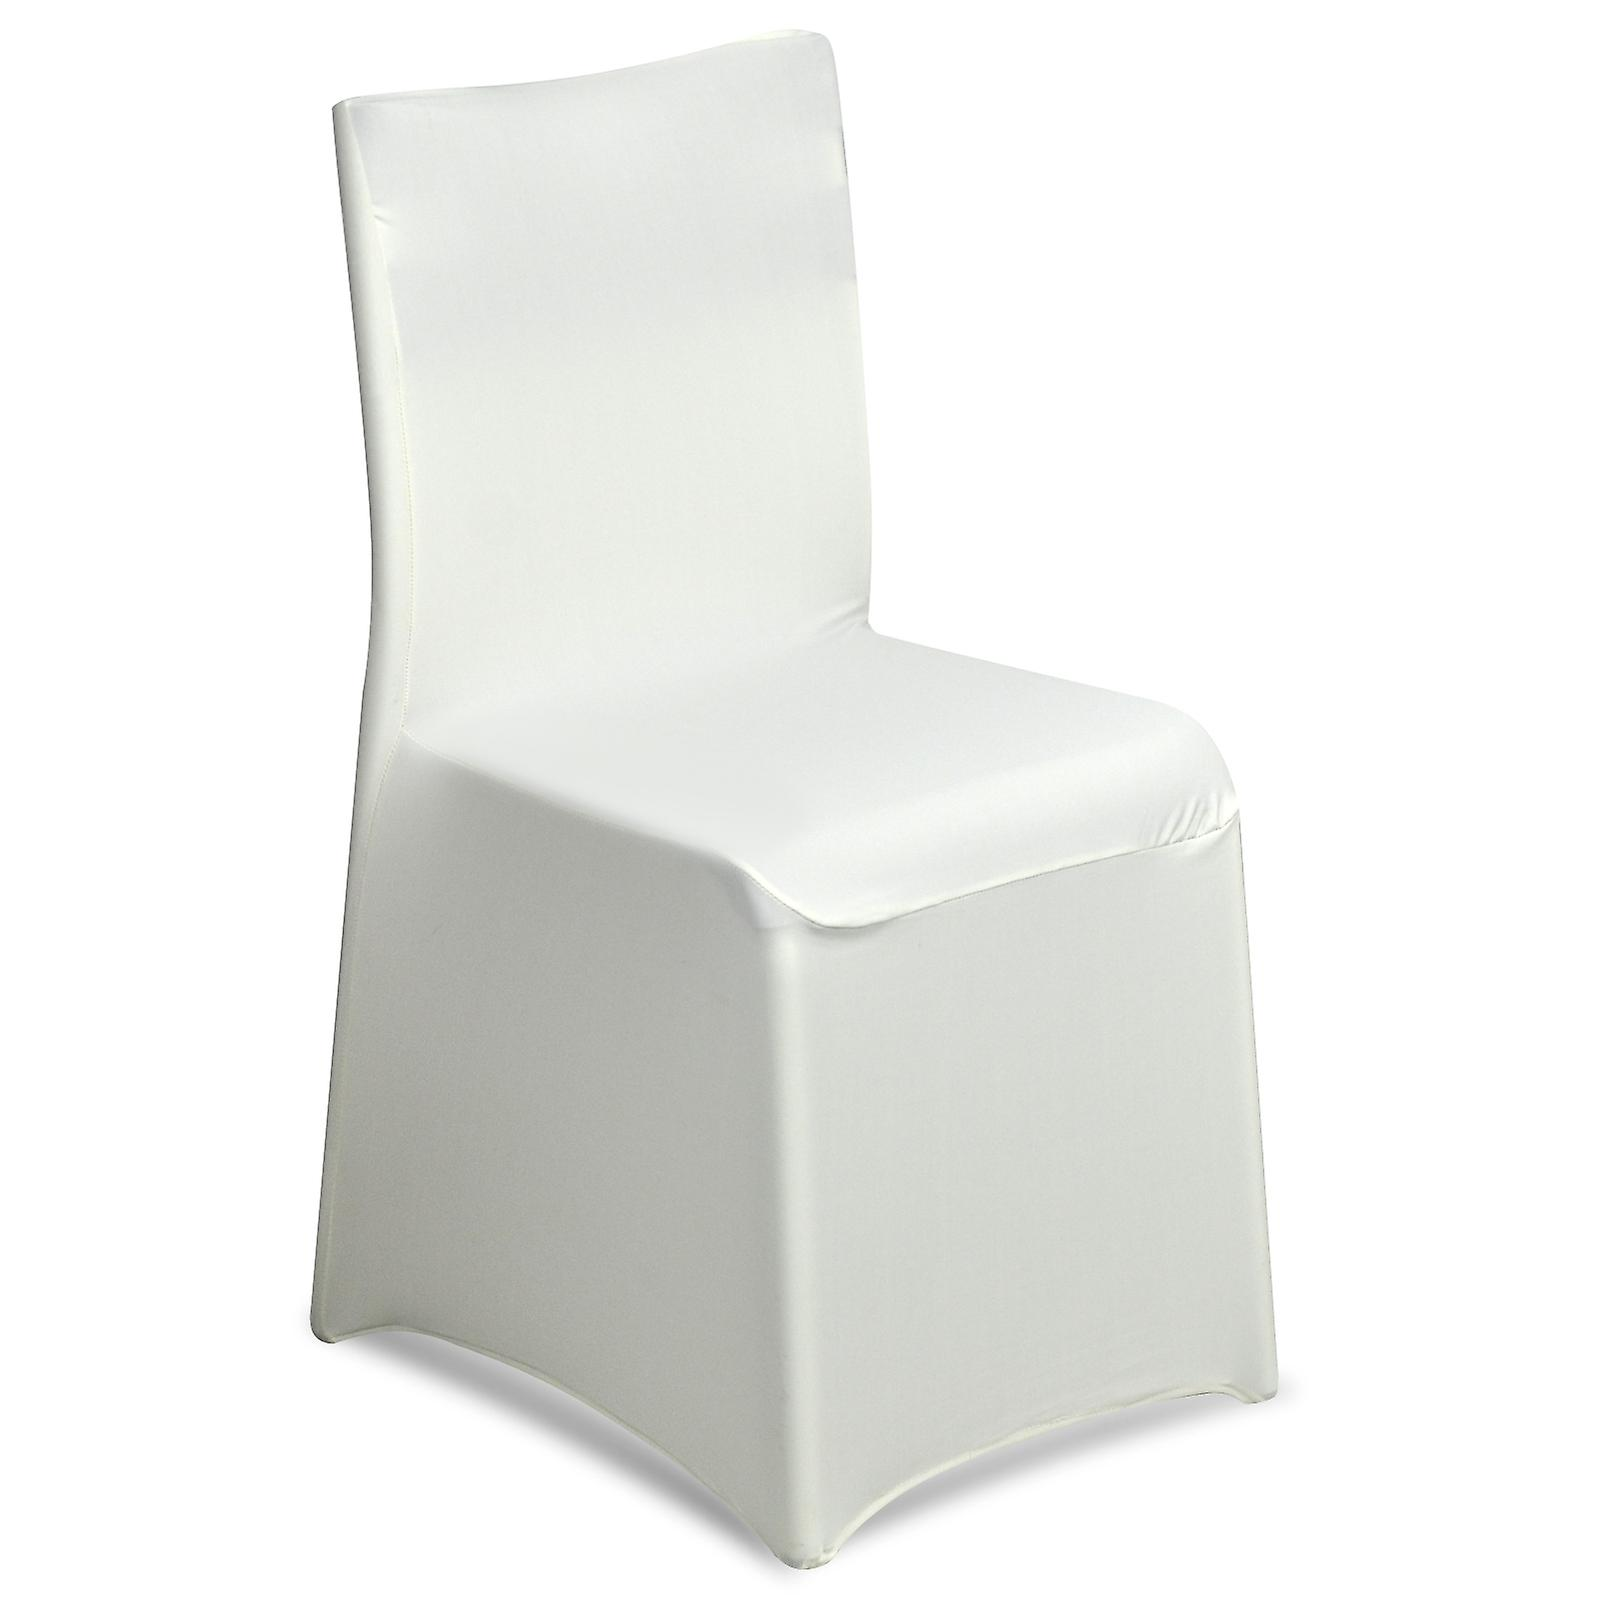 lycra chair covers nz for plastic outdoor chairs trixes ivory cover wedding reception